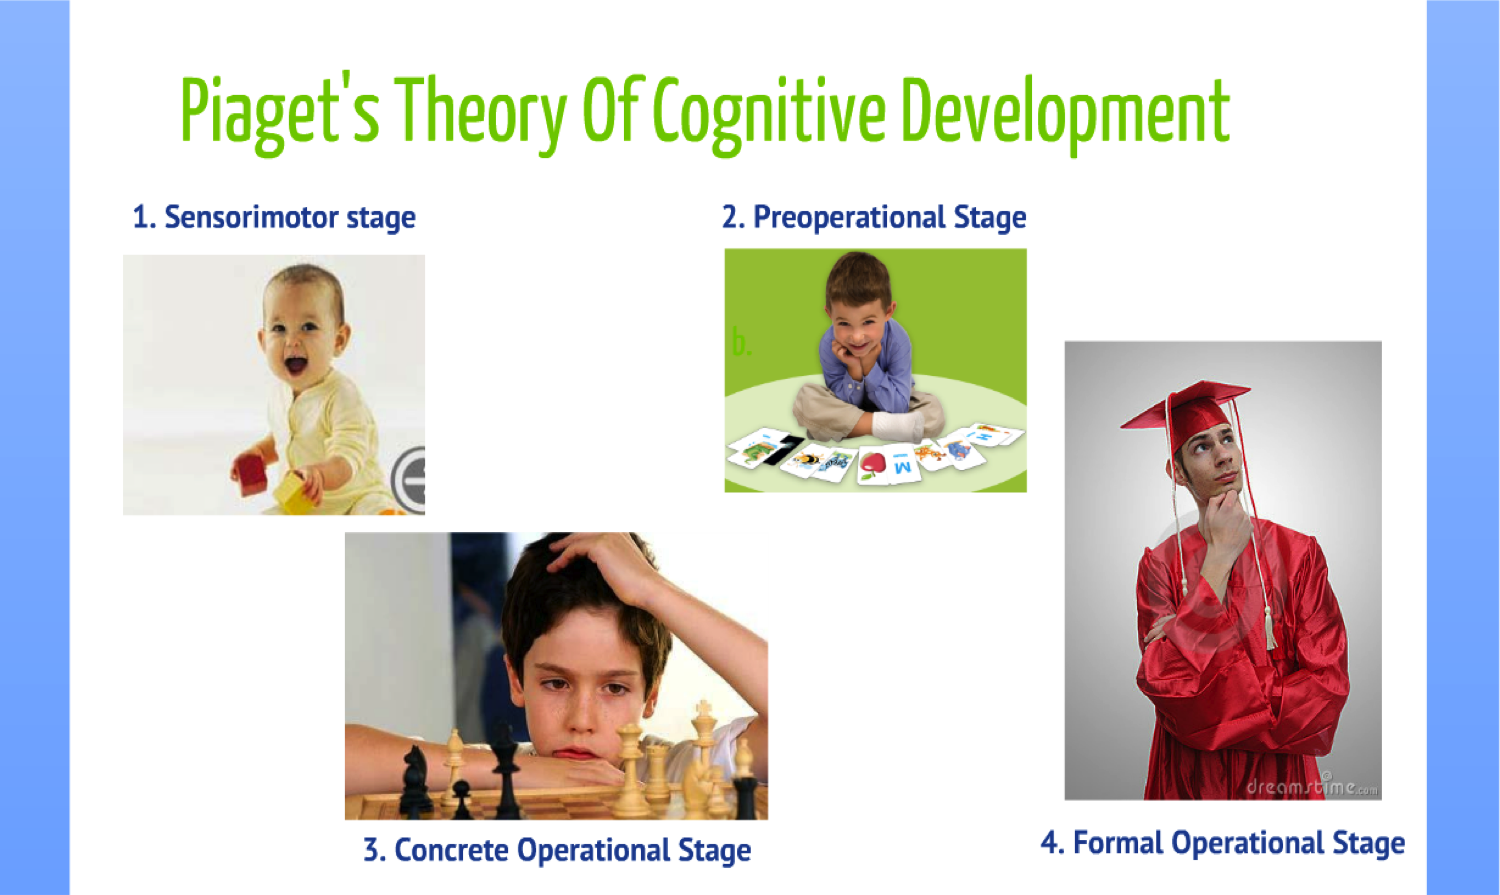 piaget essay piaget theory of cognitive development essay  piaget theory of cognitive development essay evaluating and comparing two theories of cognitive development cognitive development